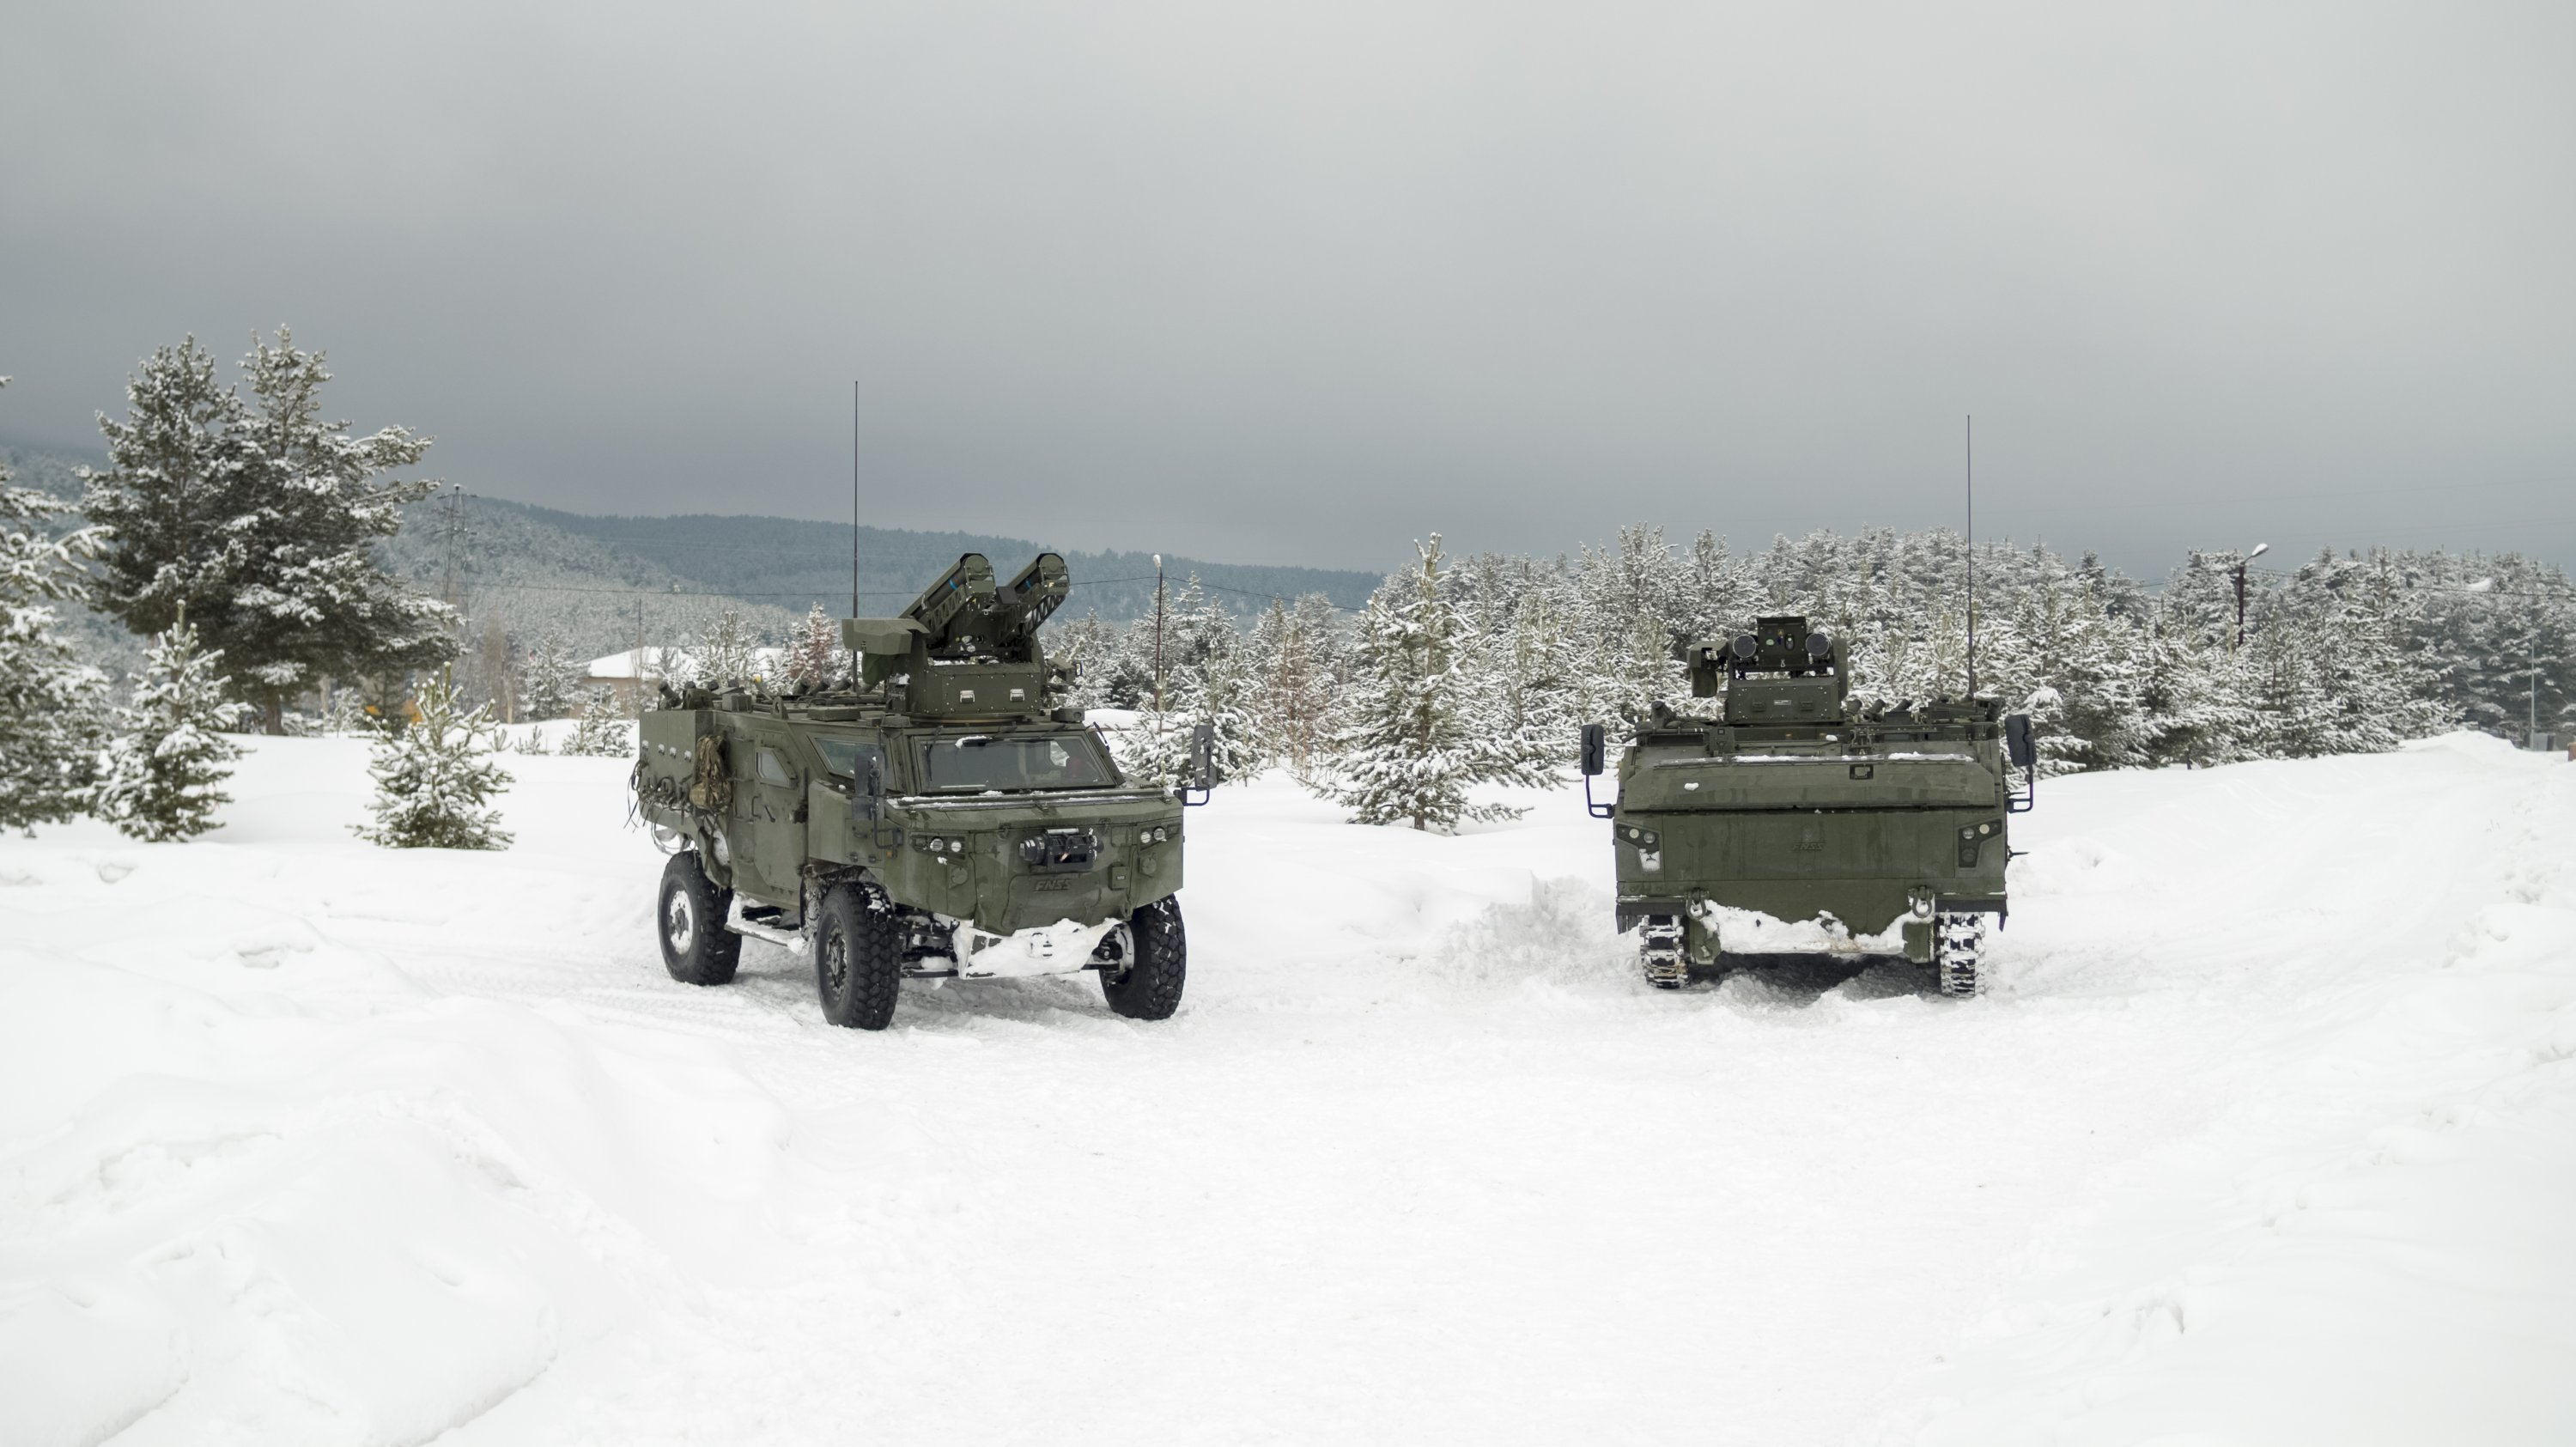 Kaplan (R) and Pars (L) 4x4 weapon carrier vehicles seen in this photo provided on Aug. 21, 2021. (Courtesy of FNSS)